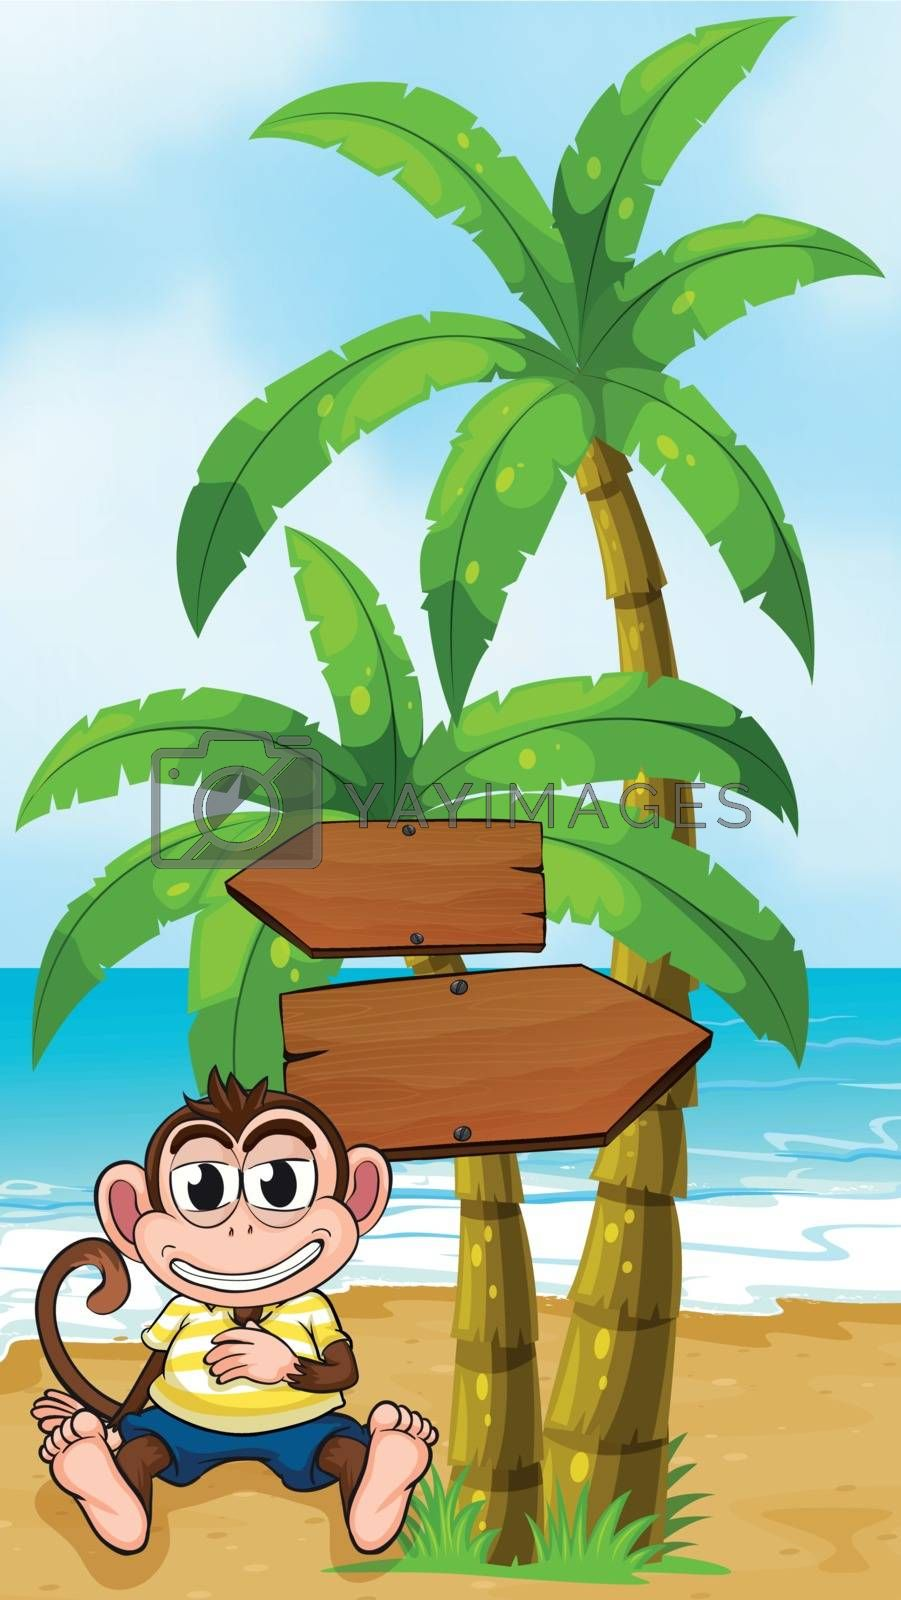 Illustration of a worried monkey at the beach with an empty callout